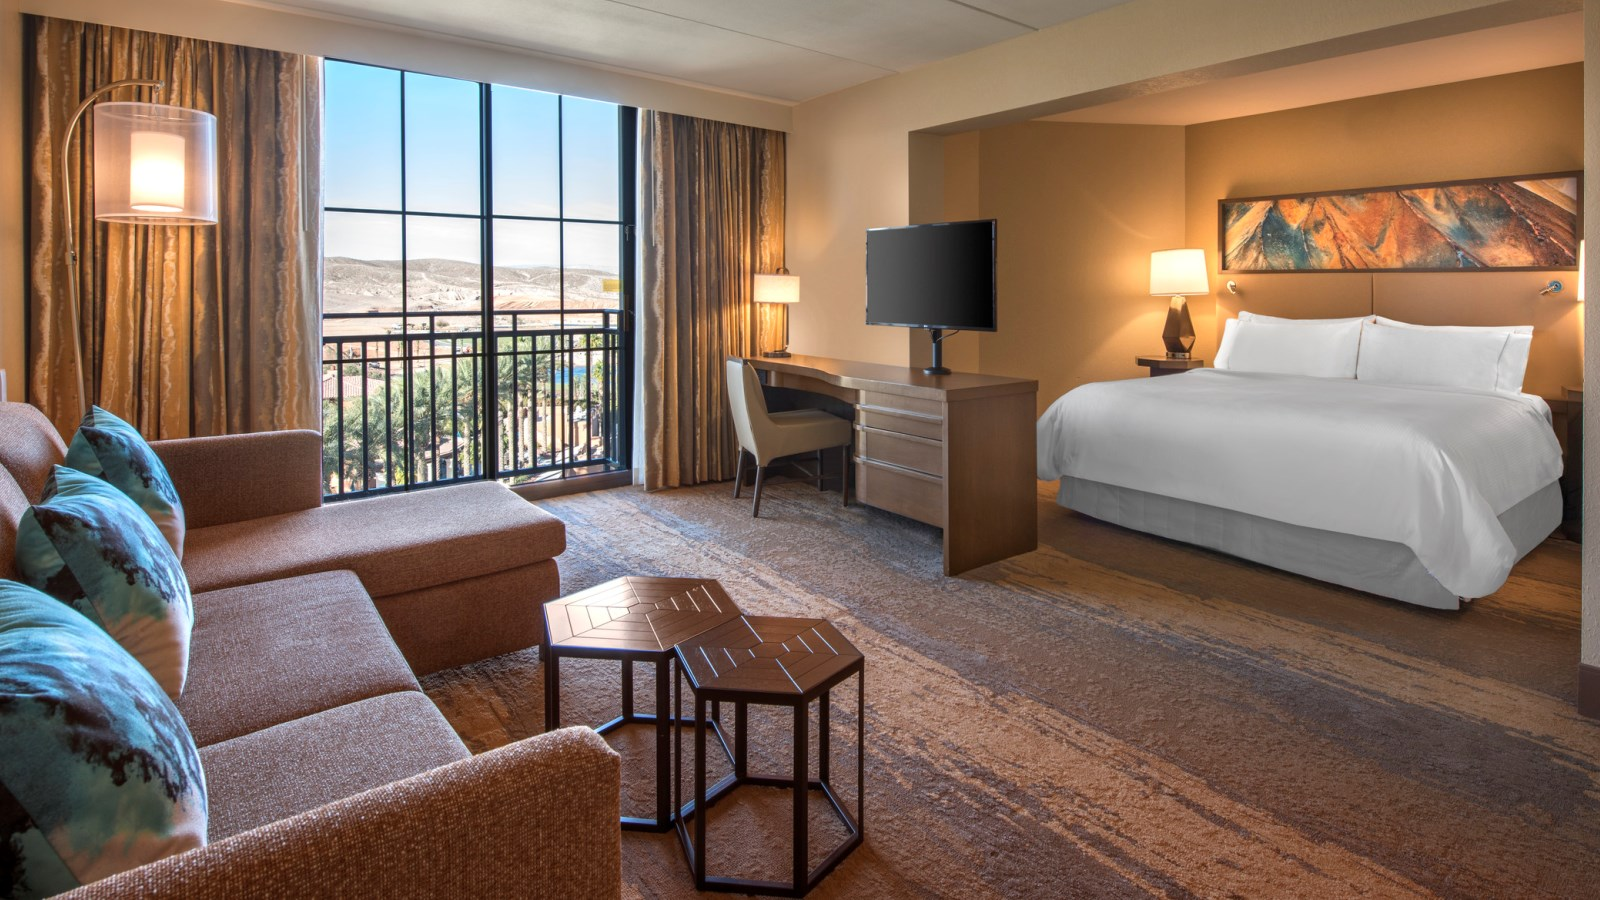 lake las vegas hotels - deluxe junior suite